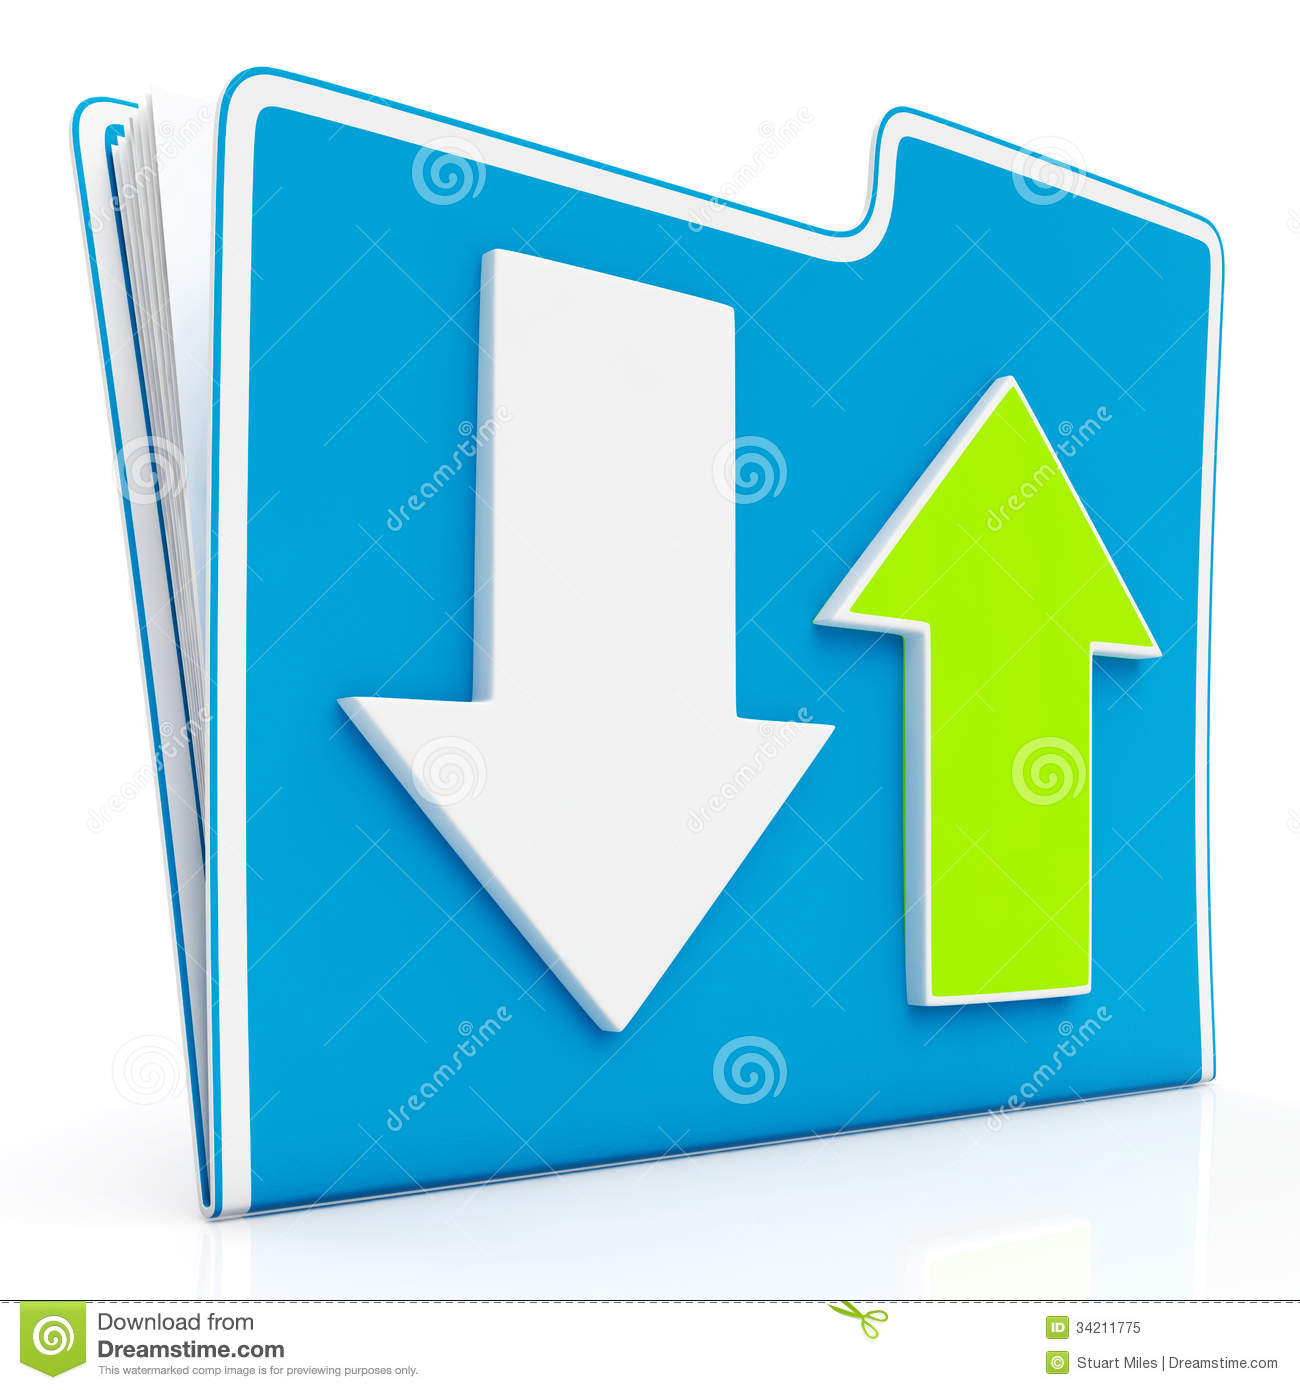 downloading-uploading-data-icon-download-upload-shows-transferring ...: www.dreamstime.com/royalty-free-stock-photo-downloading-uploading...